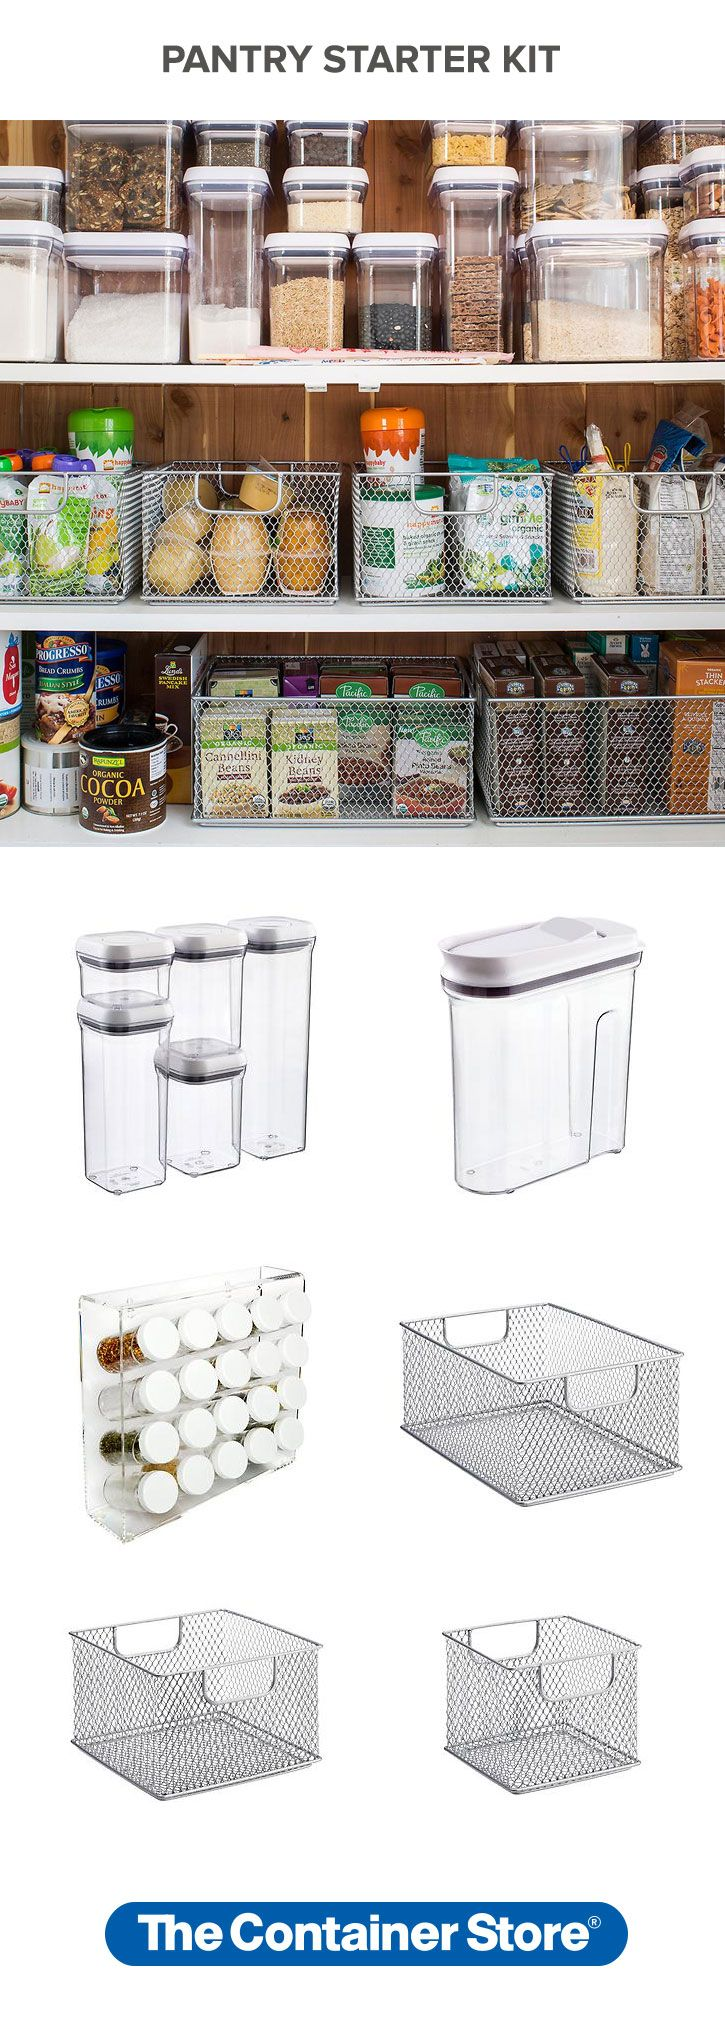 Have you put off getting your pantry in order because you just didn't know where to start? Well you're going to love our Pantry Starter Kit. From Linus Pantry Binz to canisters and spice racks, we've put everything you need to get your pantry in order in one convenient kit!